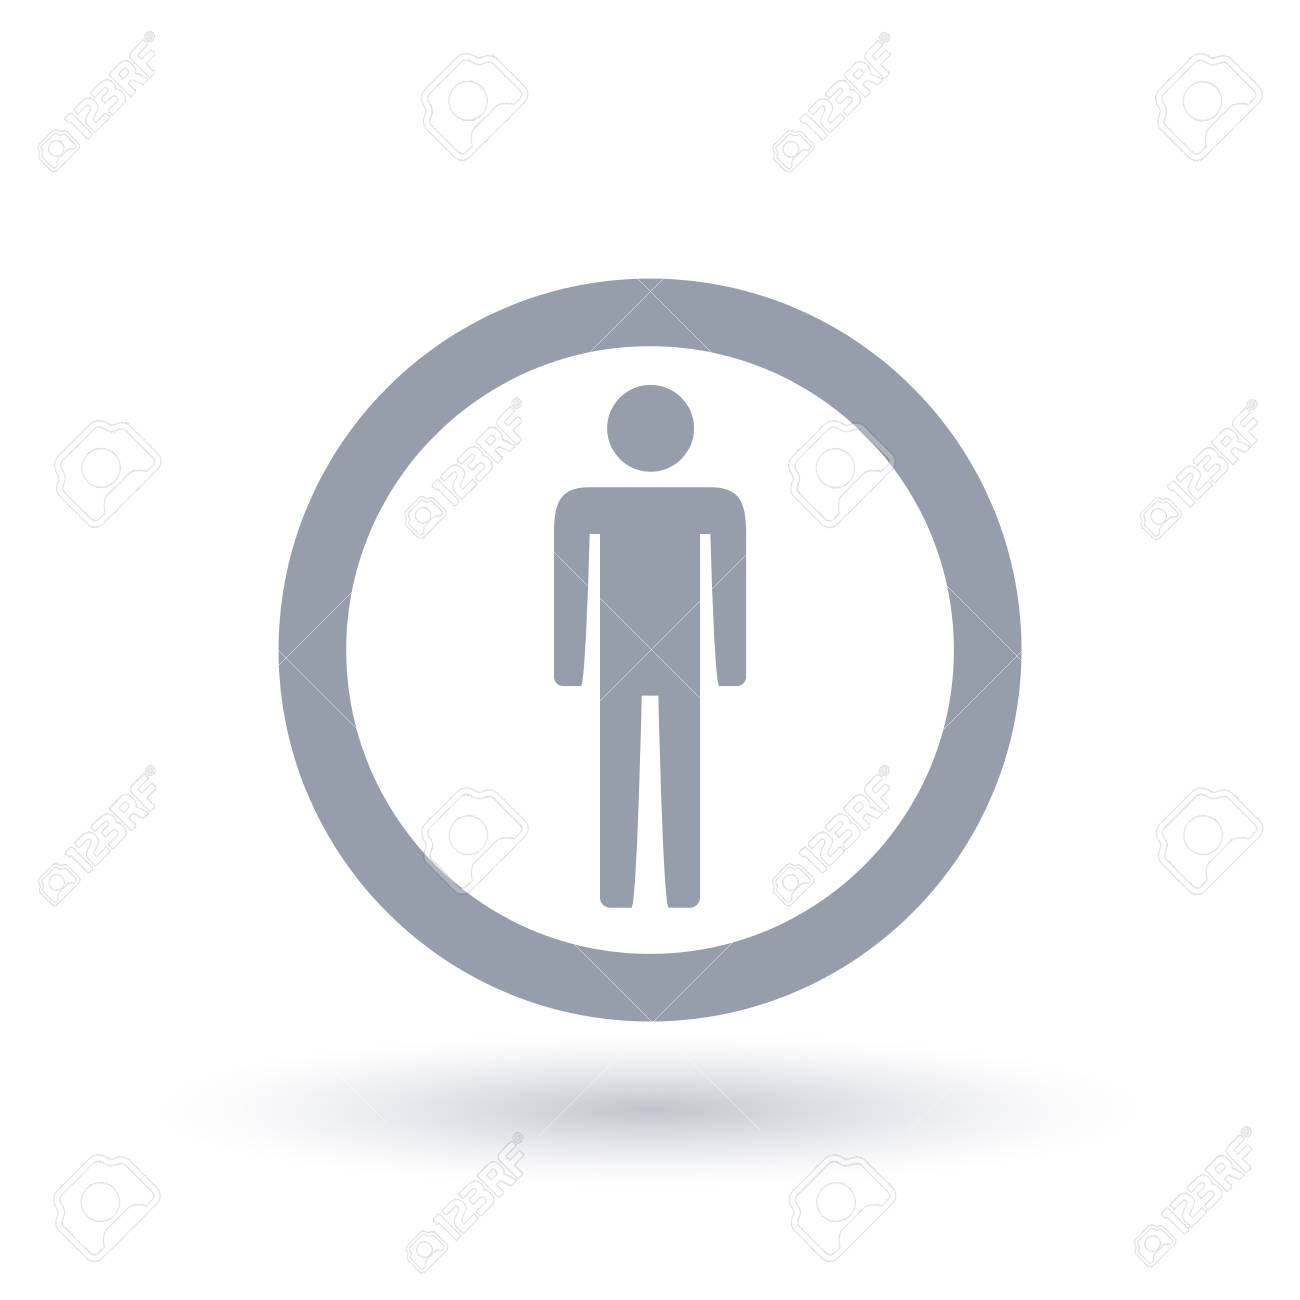 Man Icon In Circle Outline Male Gender Symbol Mens Sign Vector